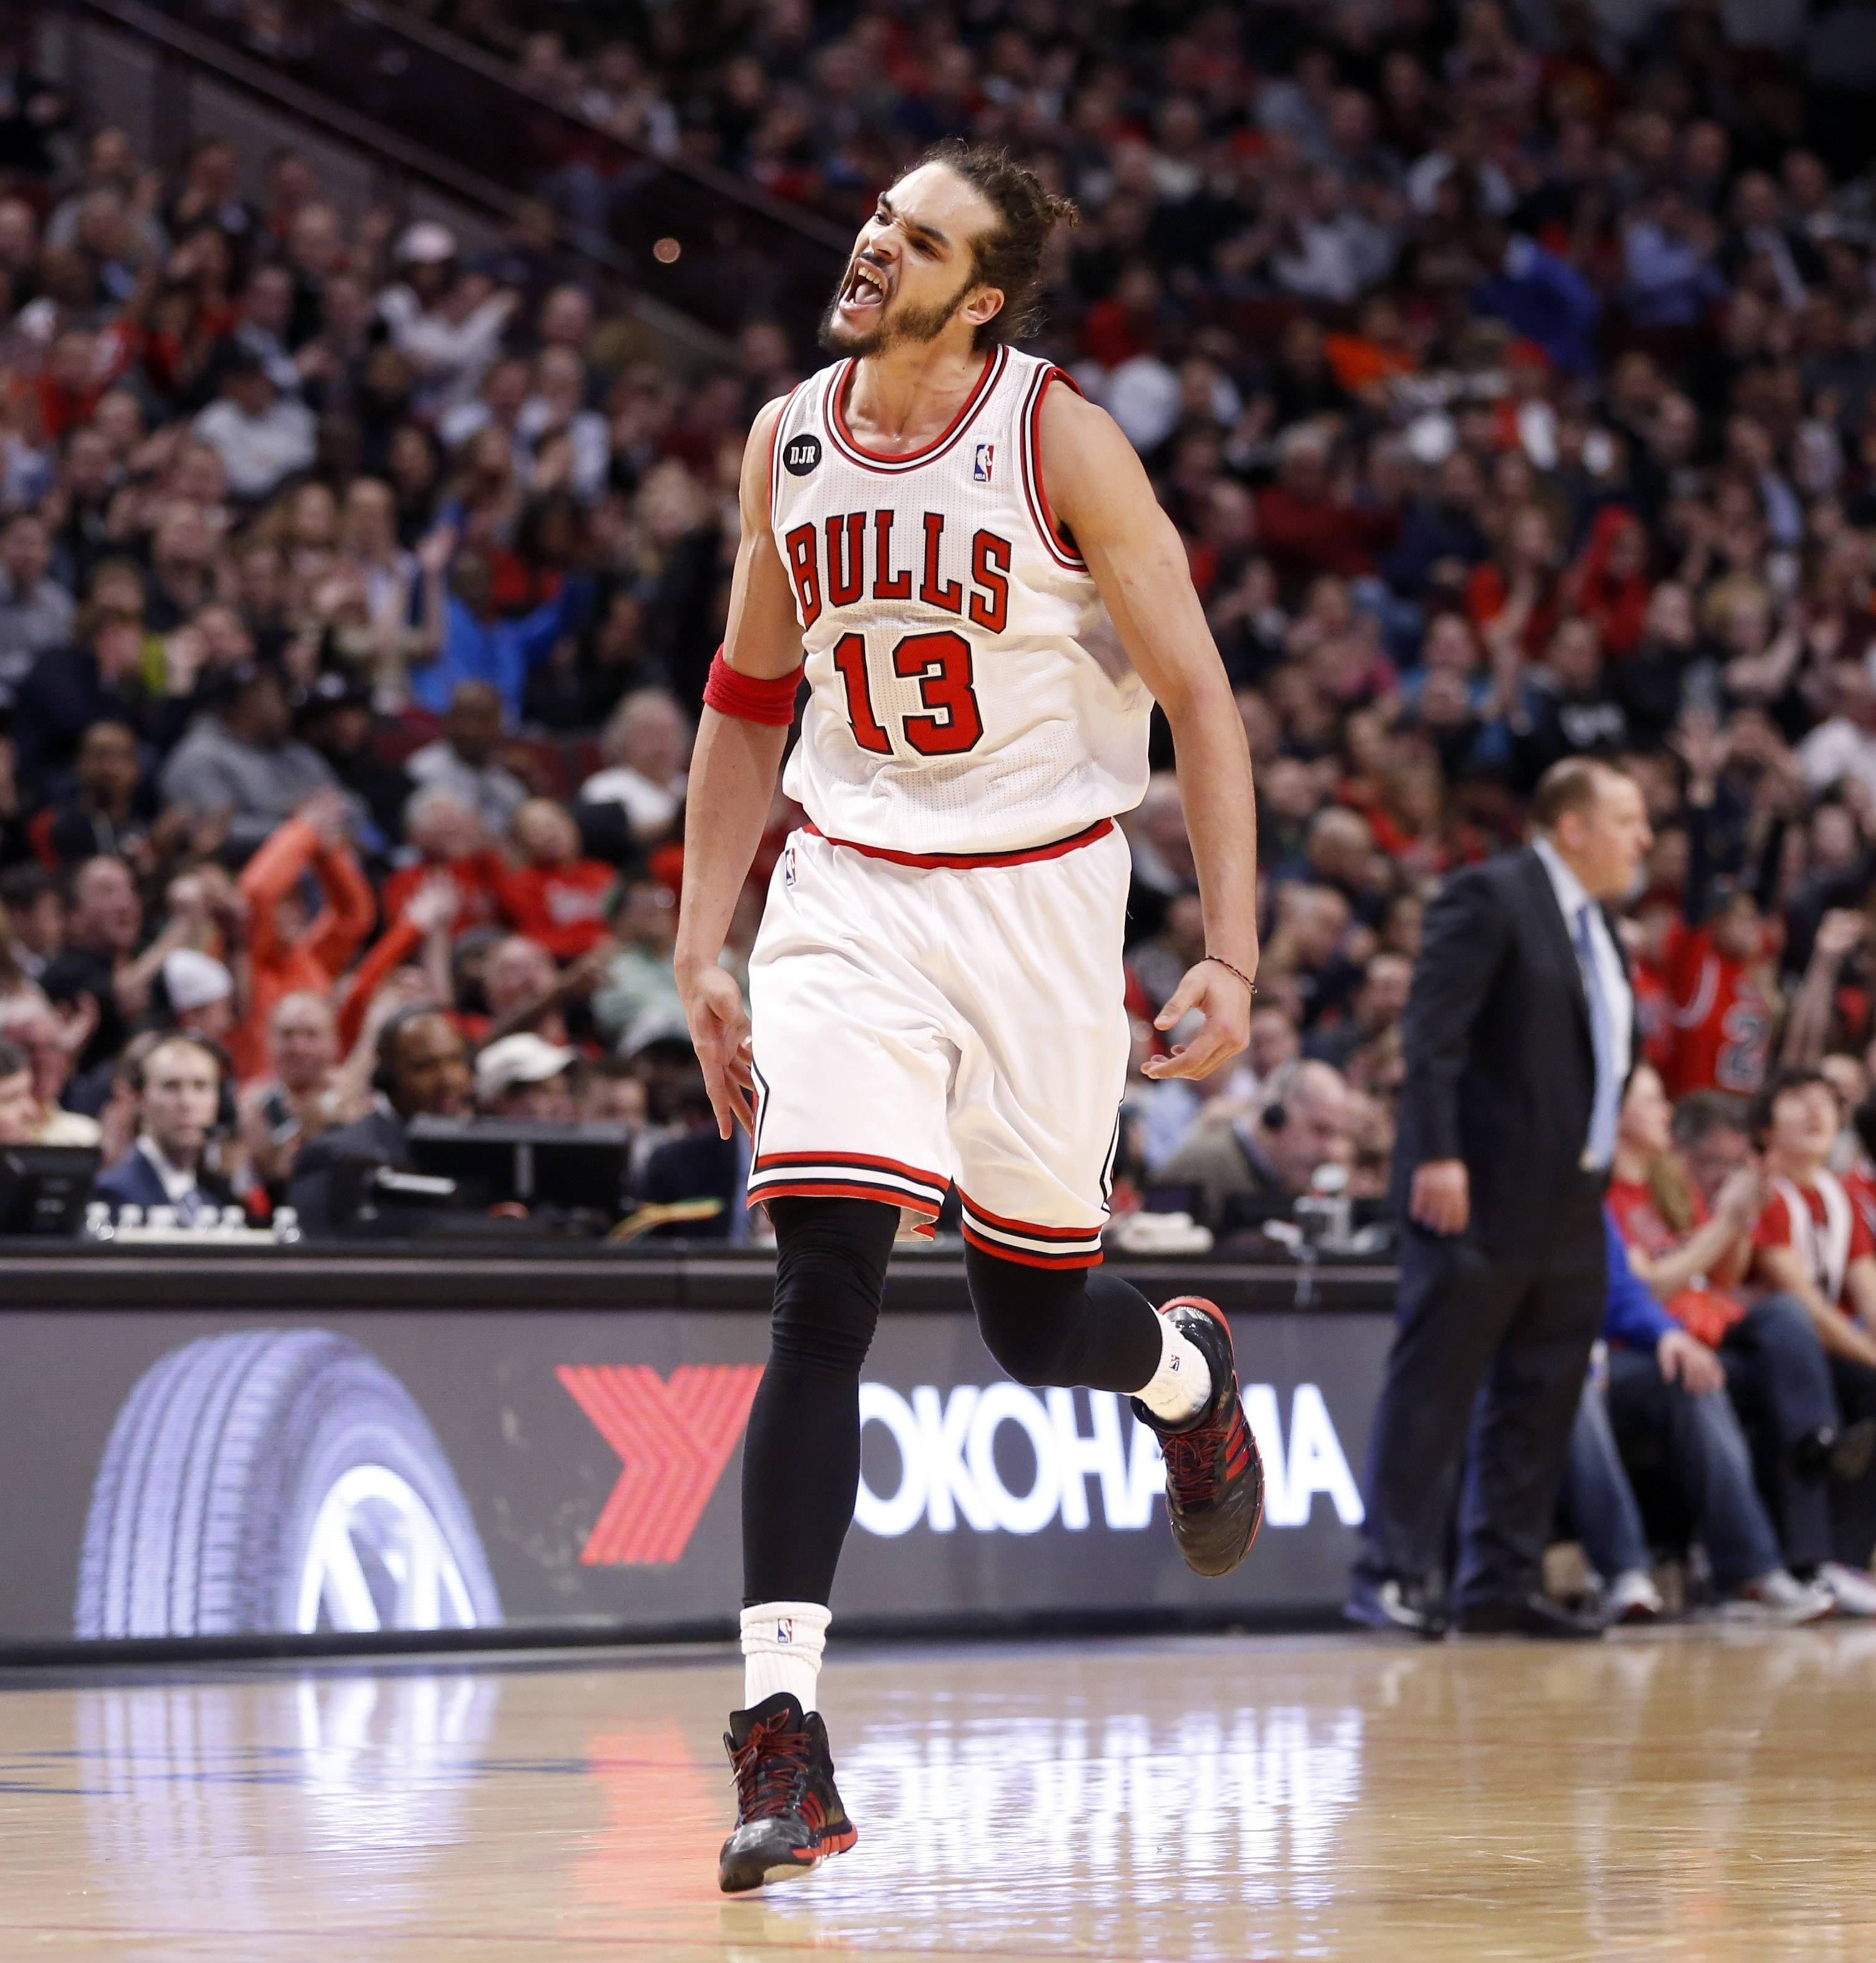 Chicago Bulls center Joakim Noah (13) celebrates the Bulls' expanding lead on the Indiana Pacers during the second half of an NBA basketball game Monday, March 24, 2014, in Chicago. The Bulls won 89-77.